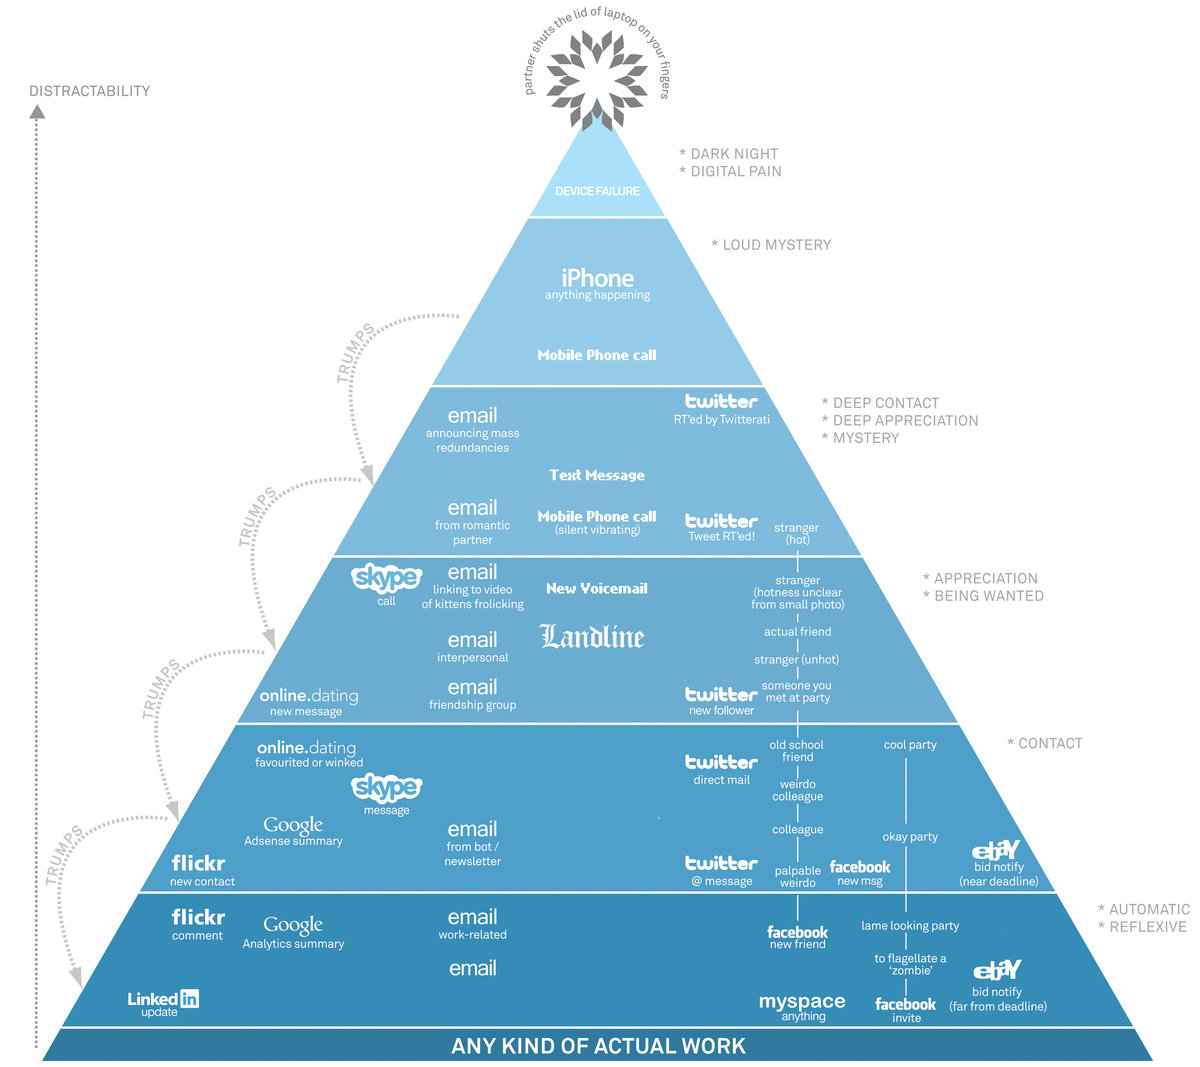 pyramid of digital distractions - david mccandless